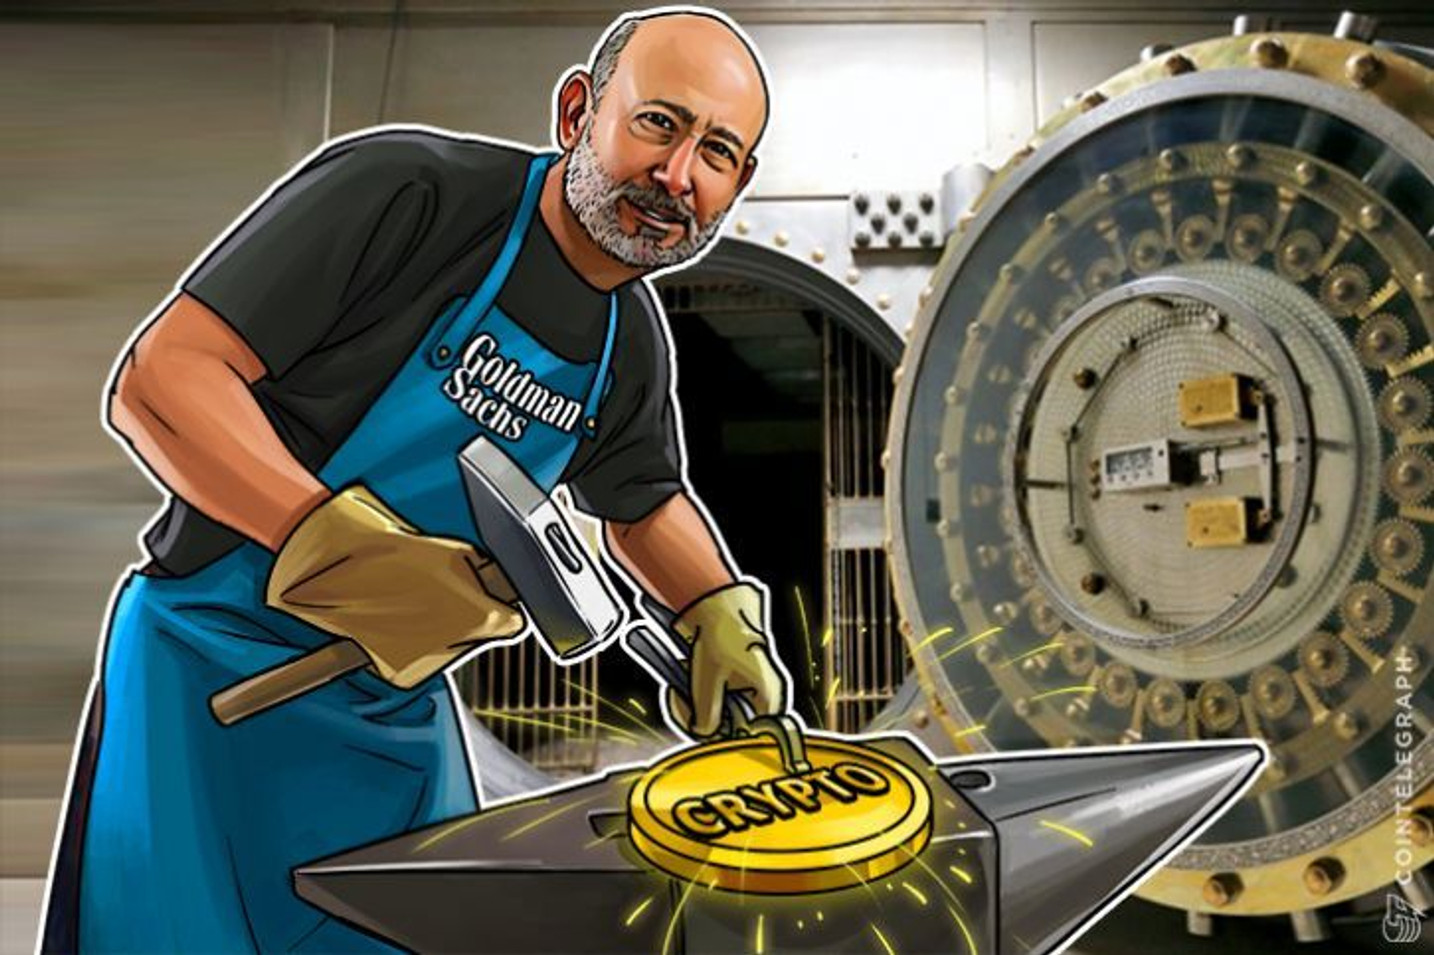 Elite Investment Bank Goldman Sachs to Clear Bitcoin Futures for Clients